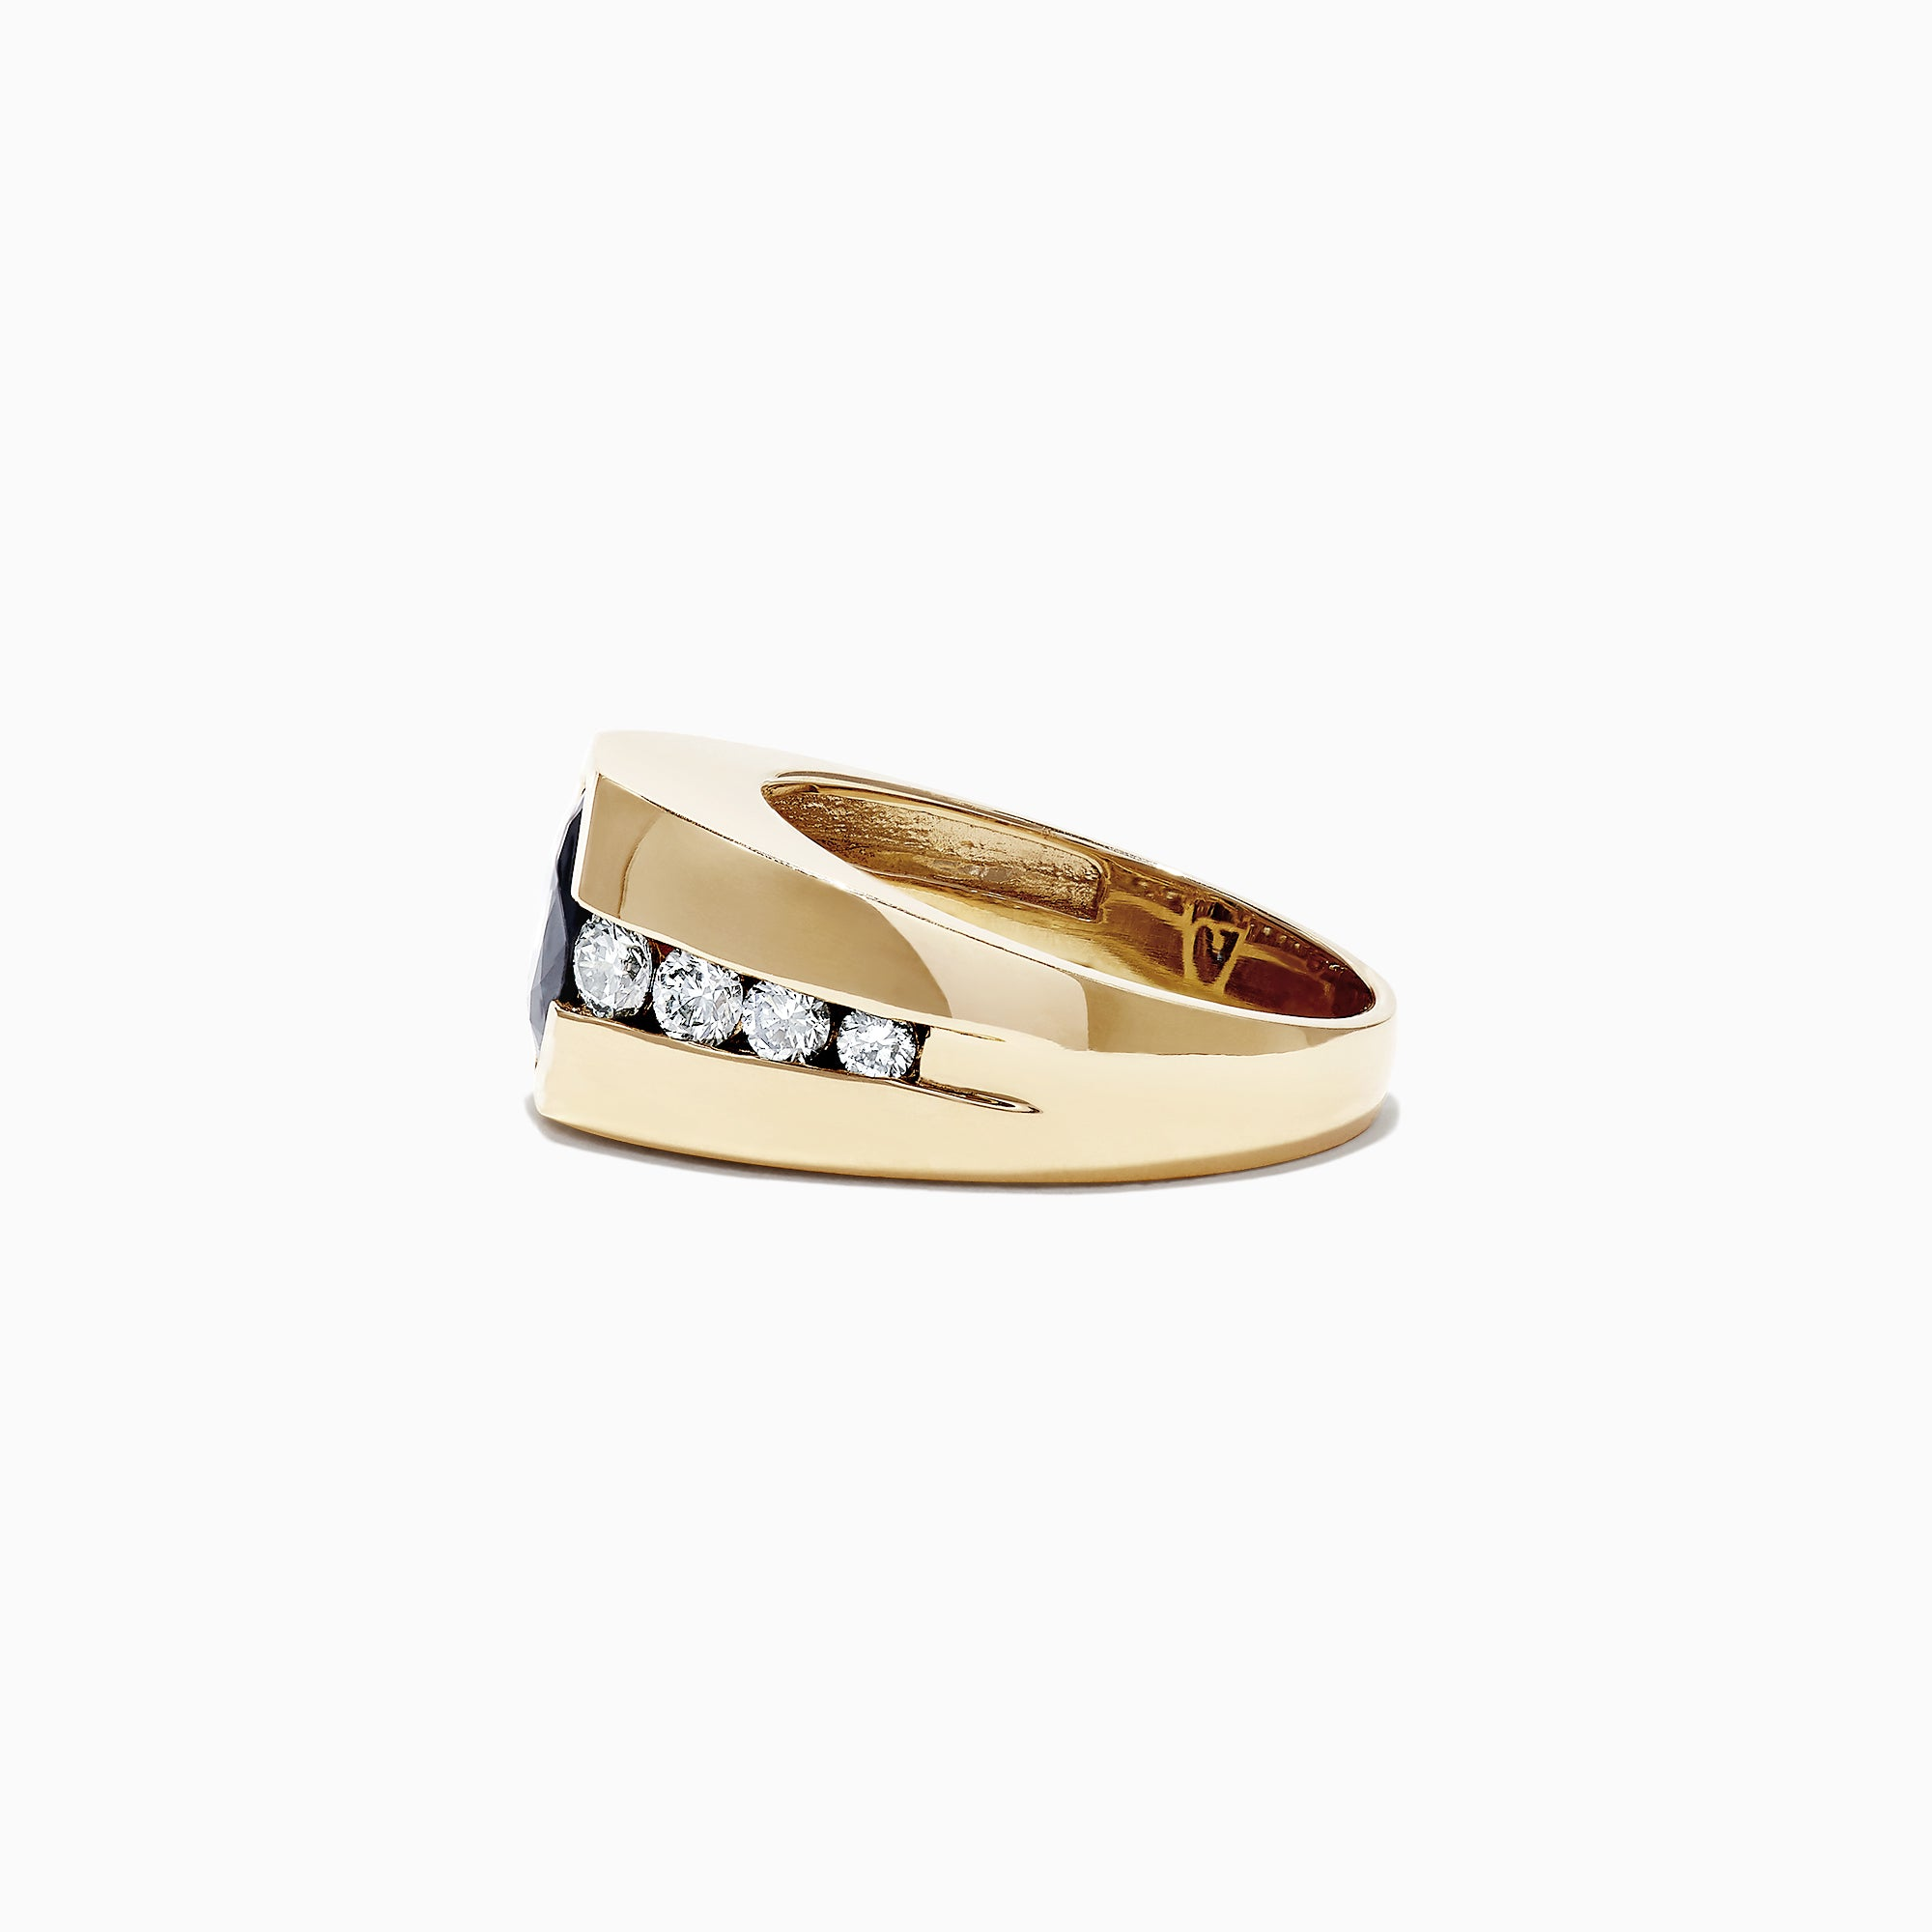 Effy Men's 14K Yellow Gold Sapphire and Diamond Ring, 3.87 TCW